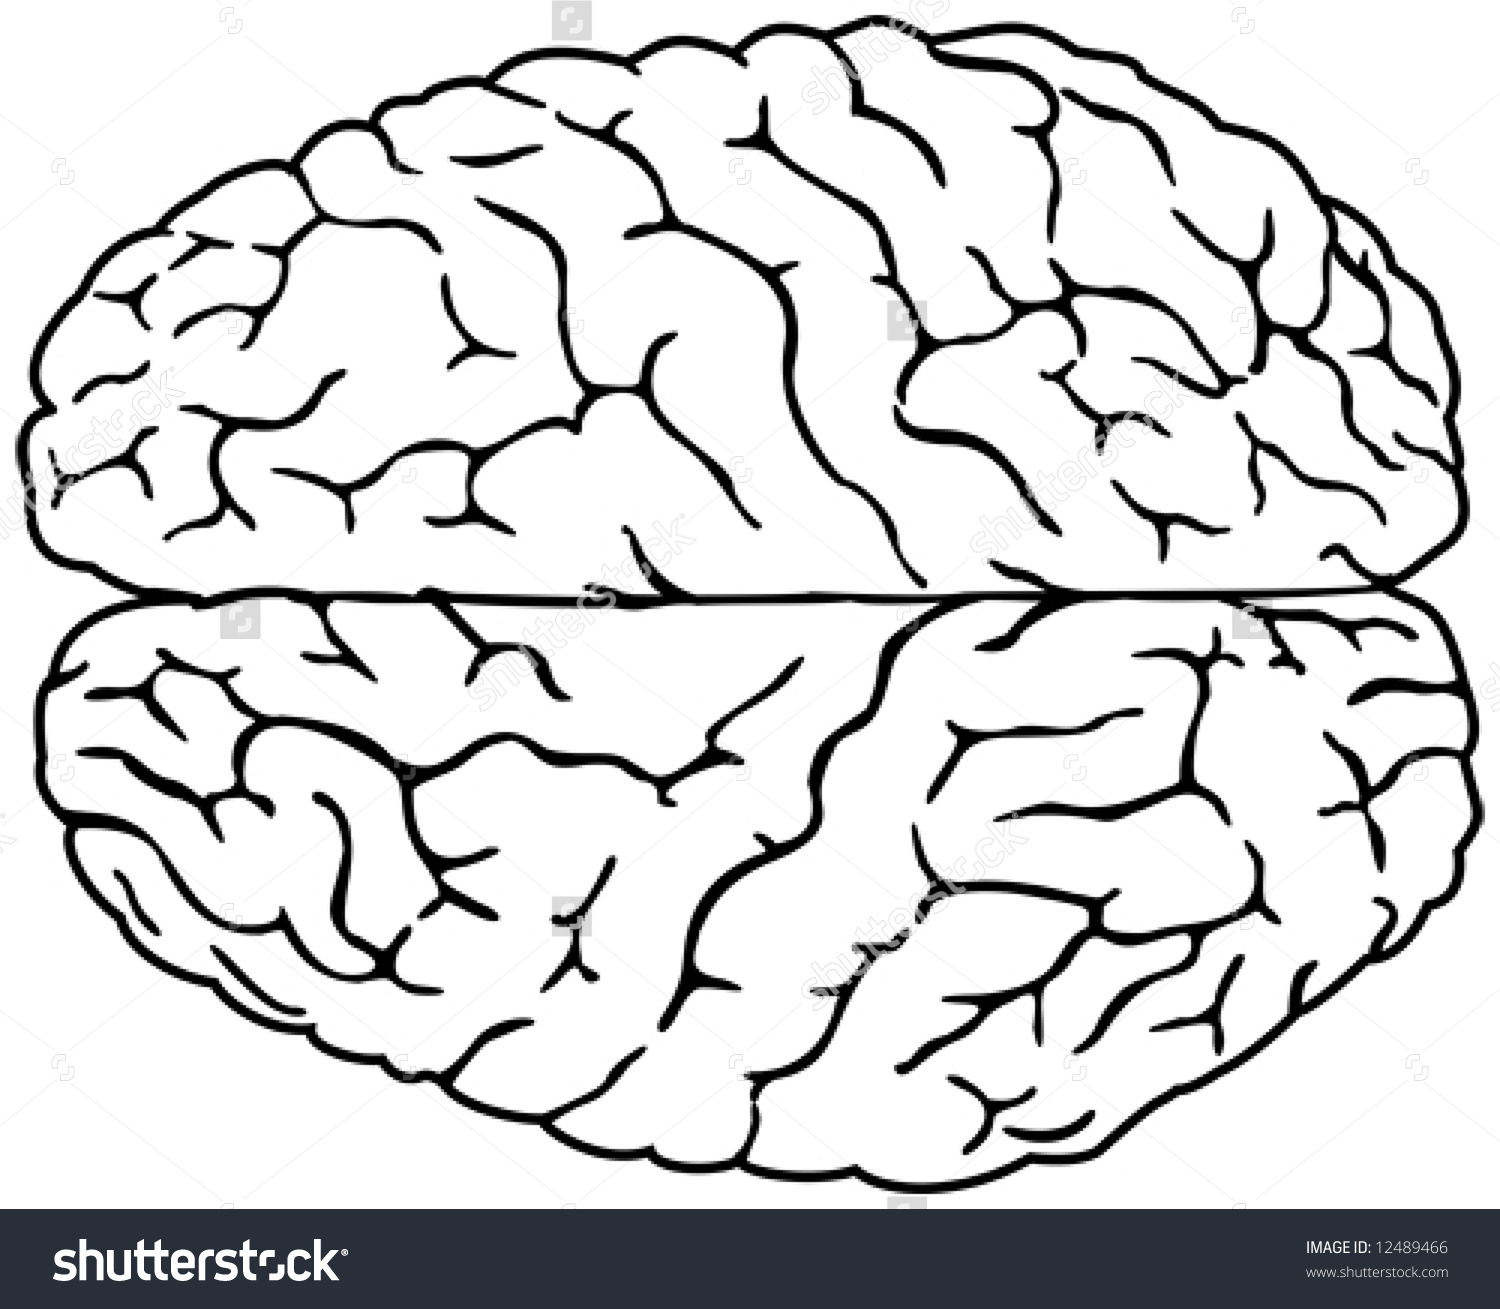 1500x1309 Collection Of Simple Drawing Of The Brain High Quality, Free